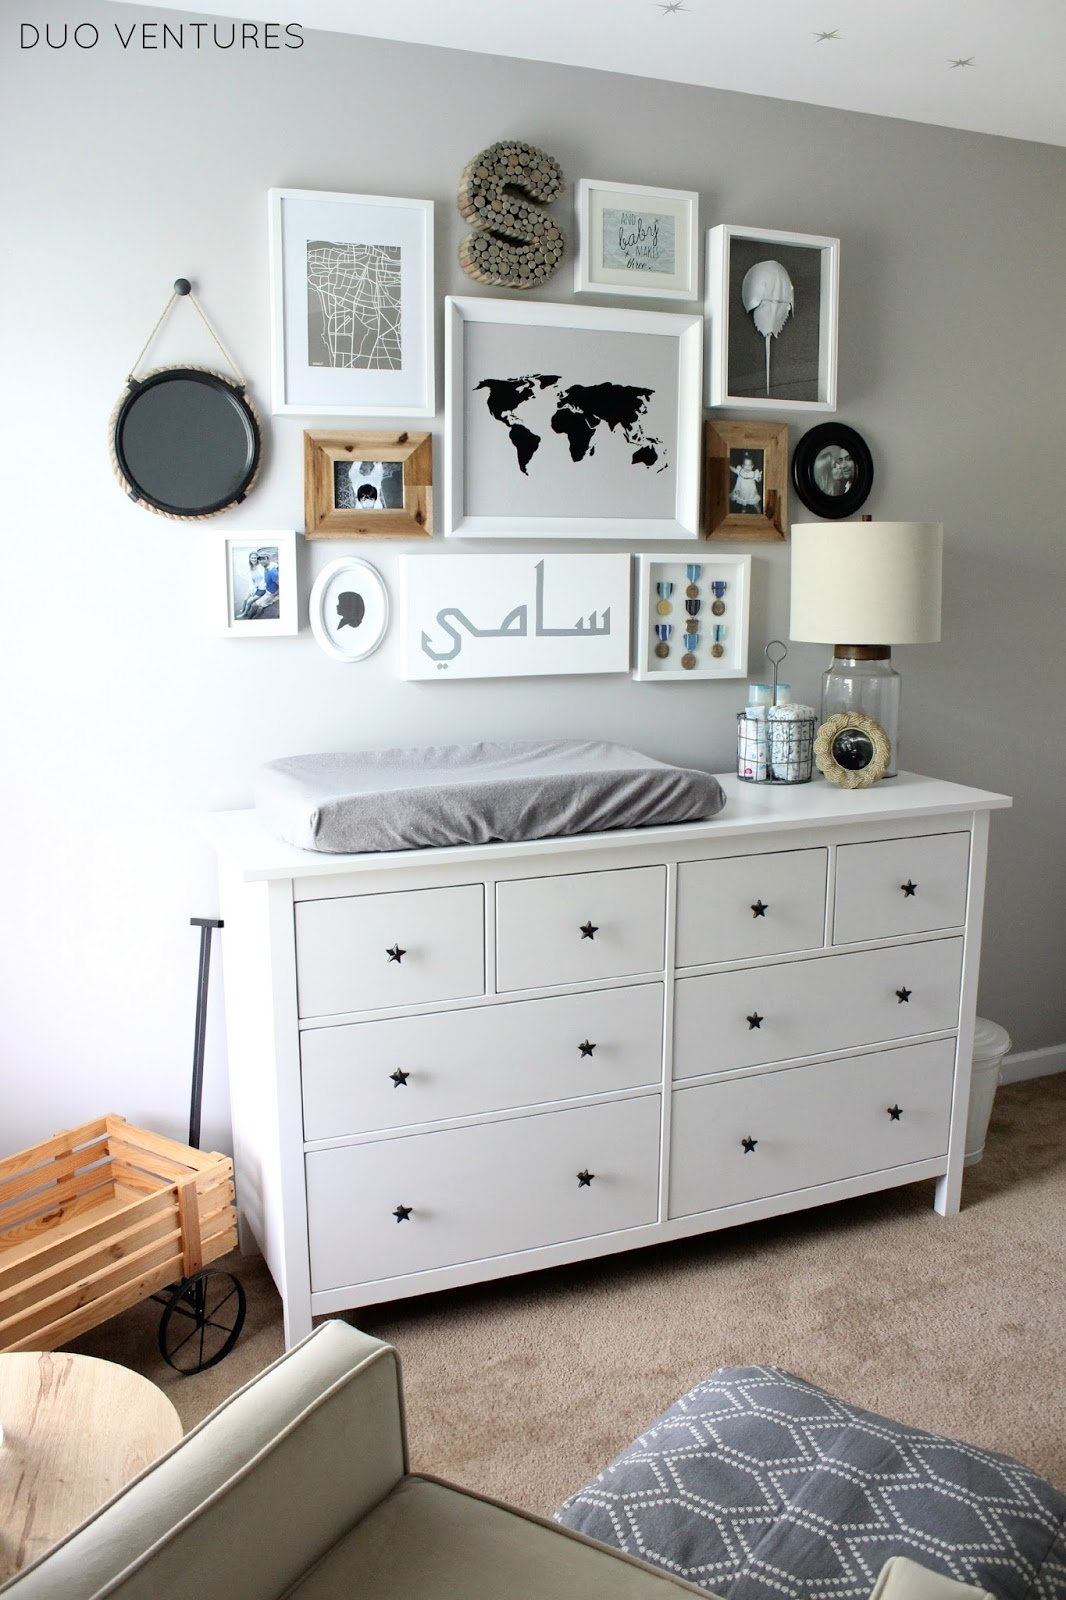 duo ventures the nursery custom ikea hemnes dresser. Black Bedroom Furniture Sets. Home Design Ideas